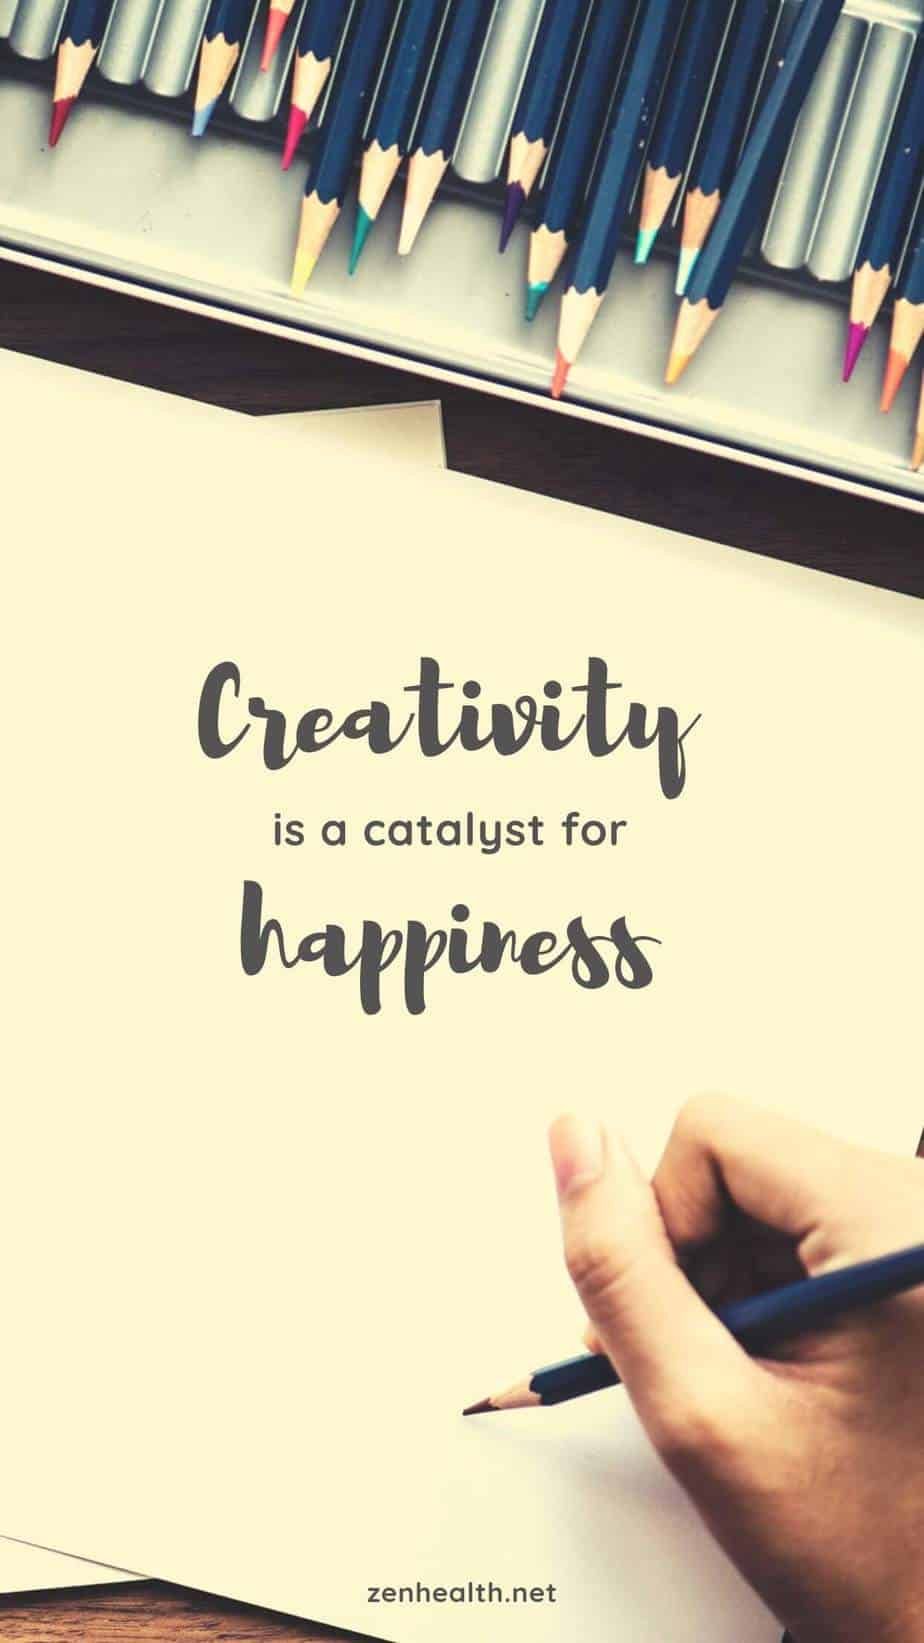 Creativity is a catalyst for happiness.